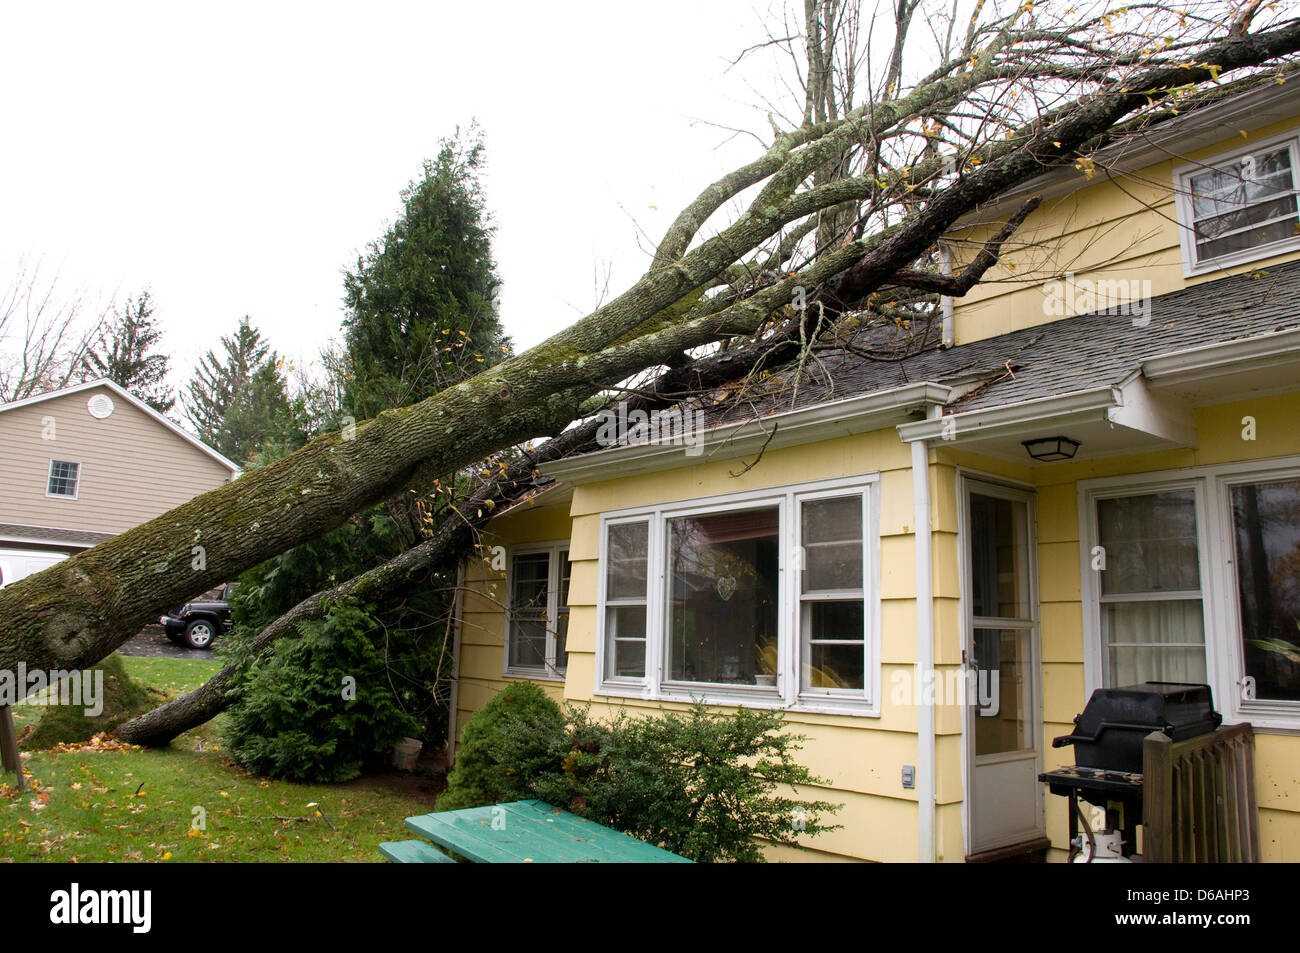 Tree which has fallen on the roof of a house. Caused by Hurricane Sandy. - Stock Image